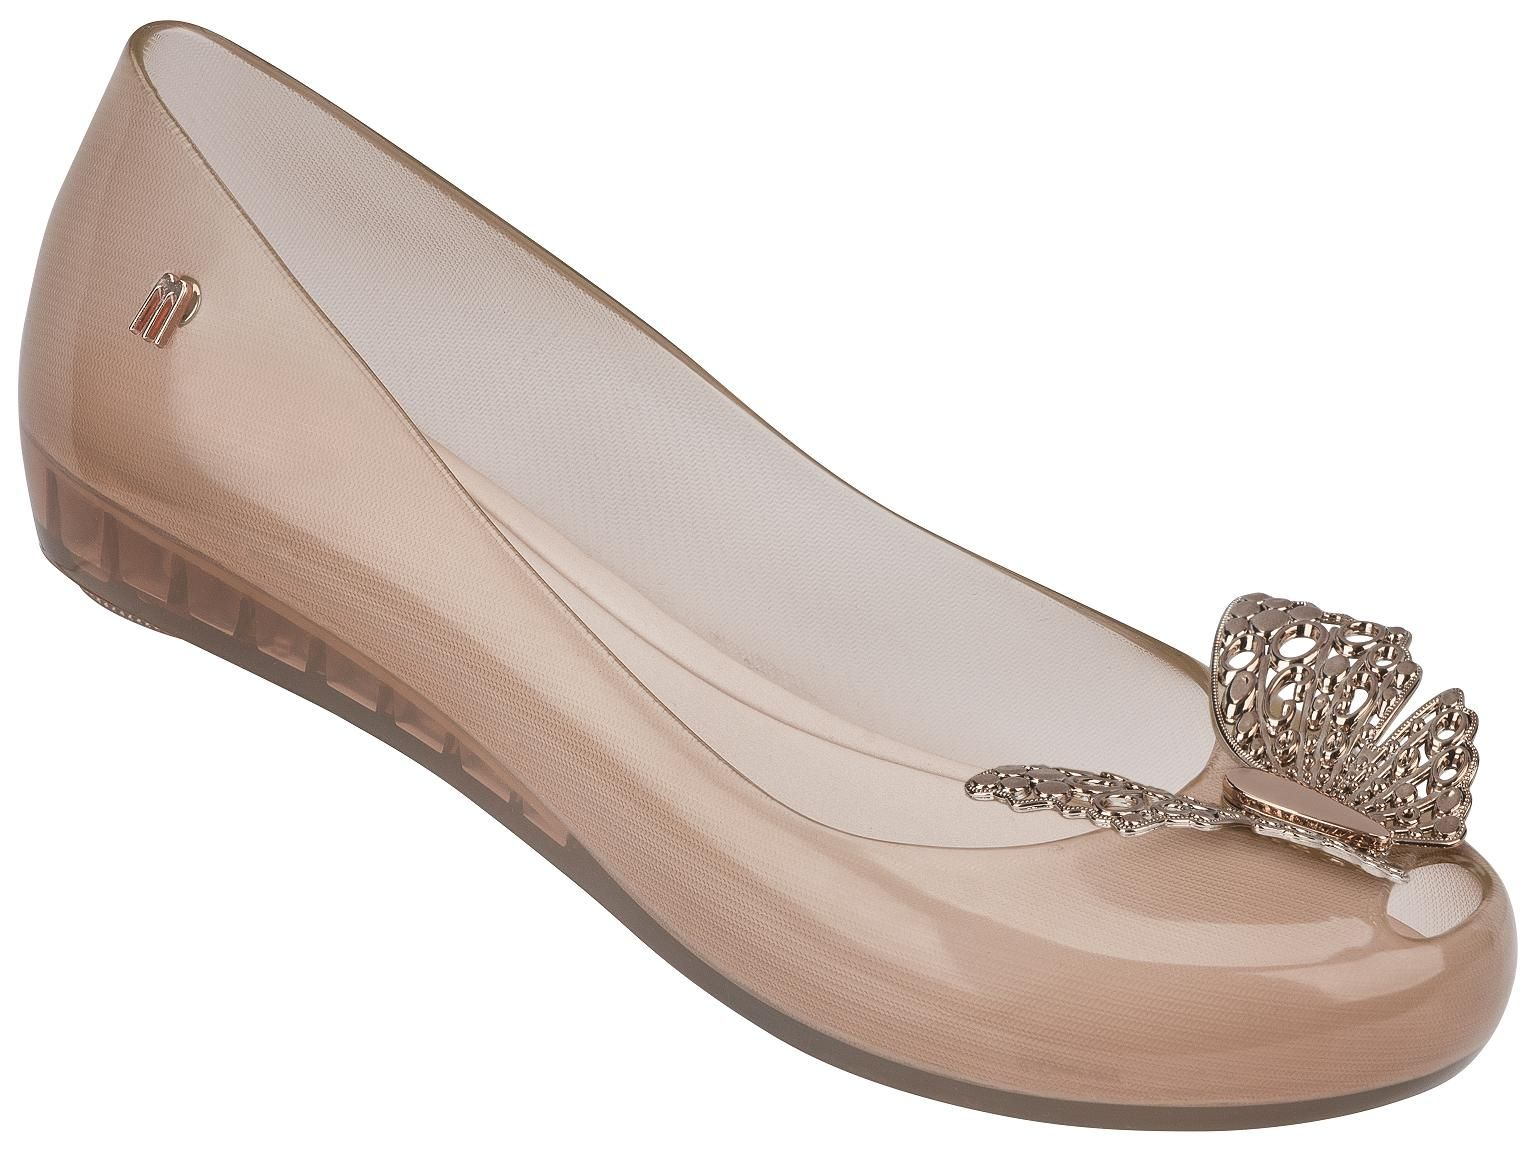 Explore Cinderella Slipper, Melissa Shoes, and more!